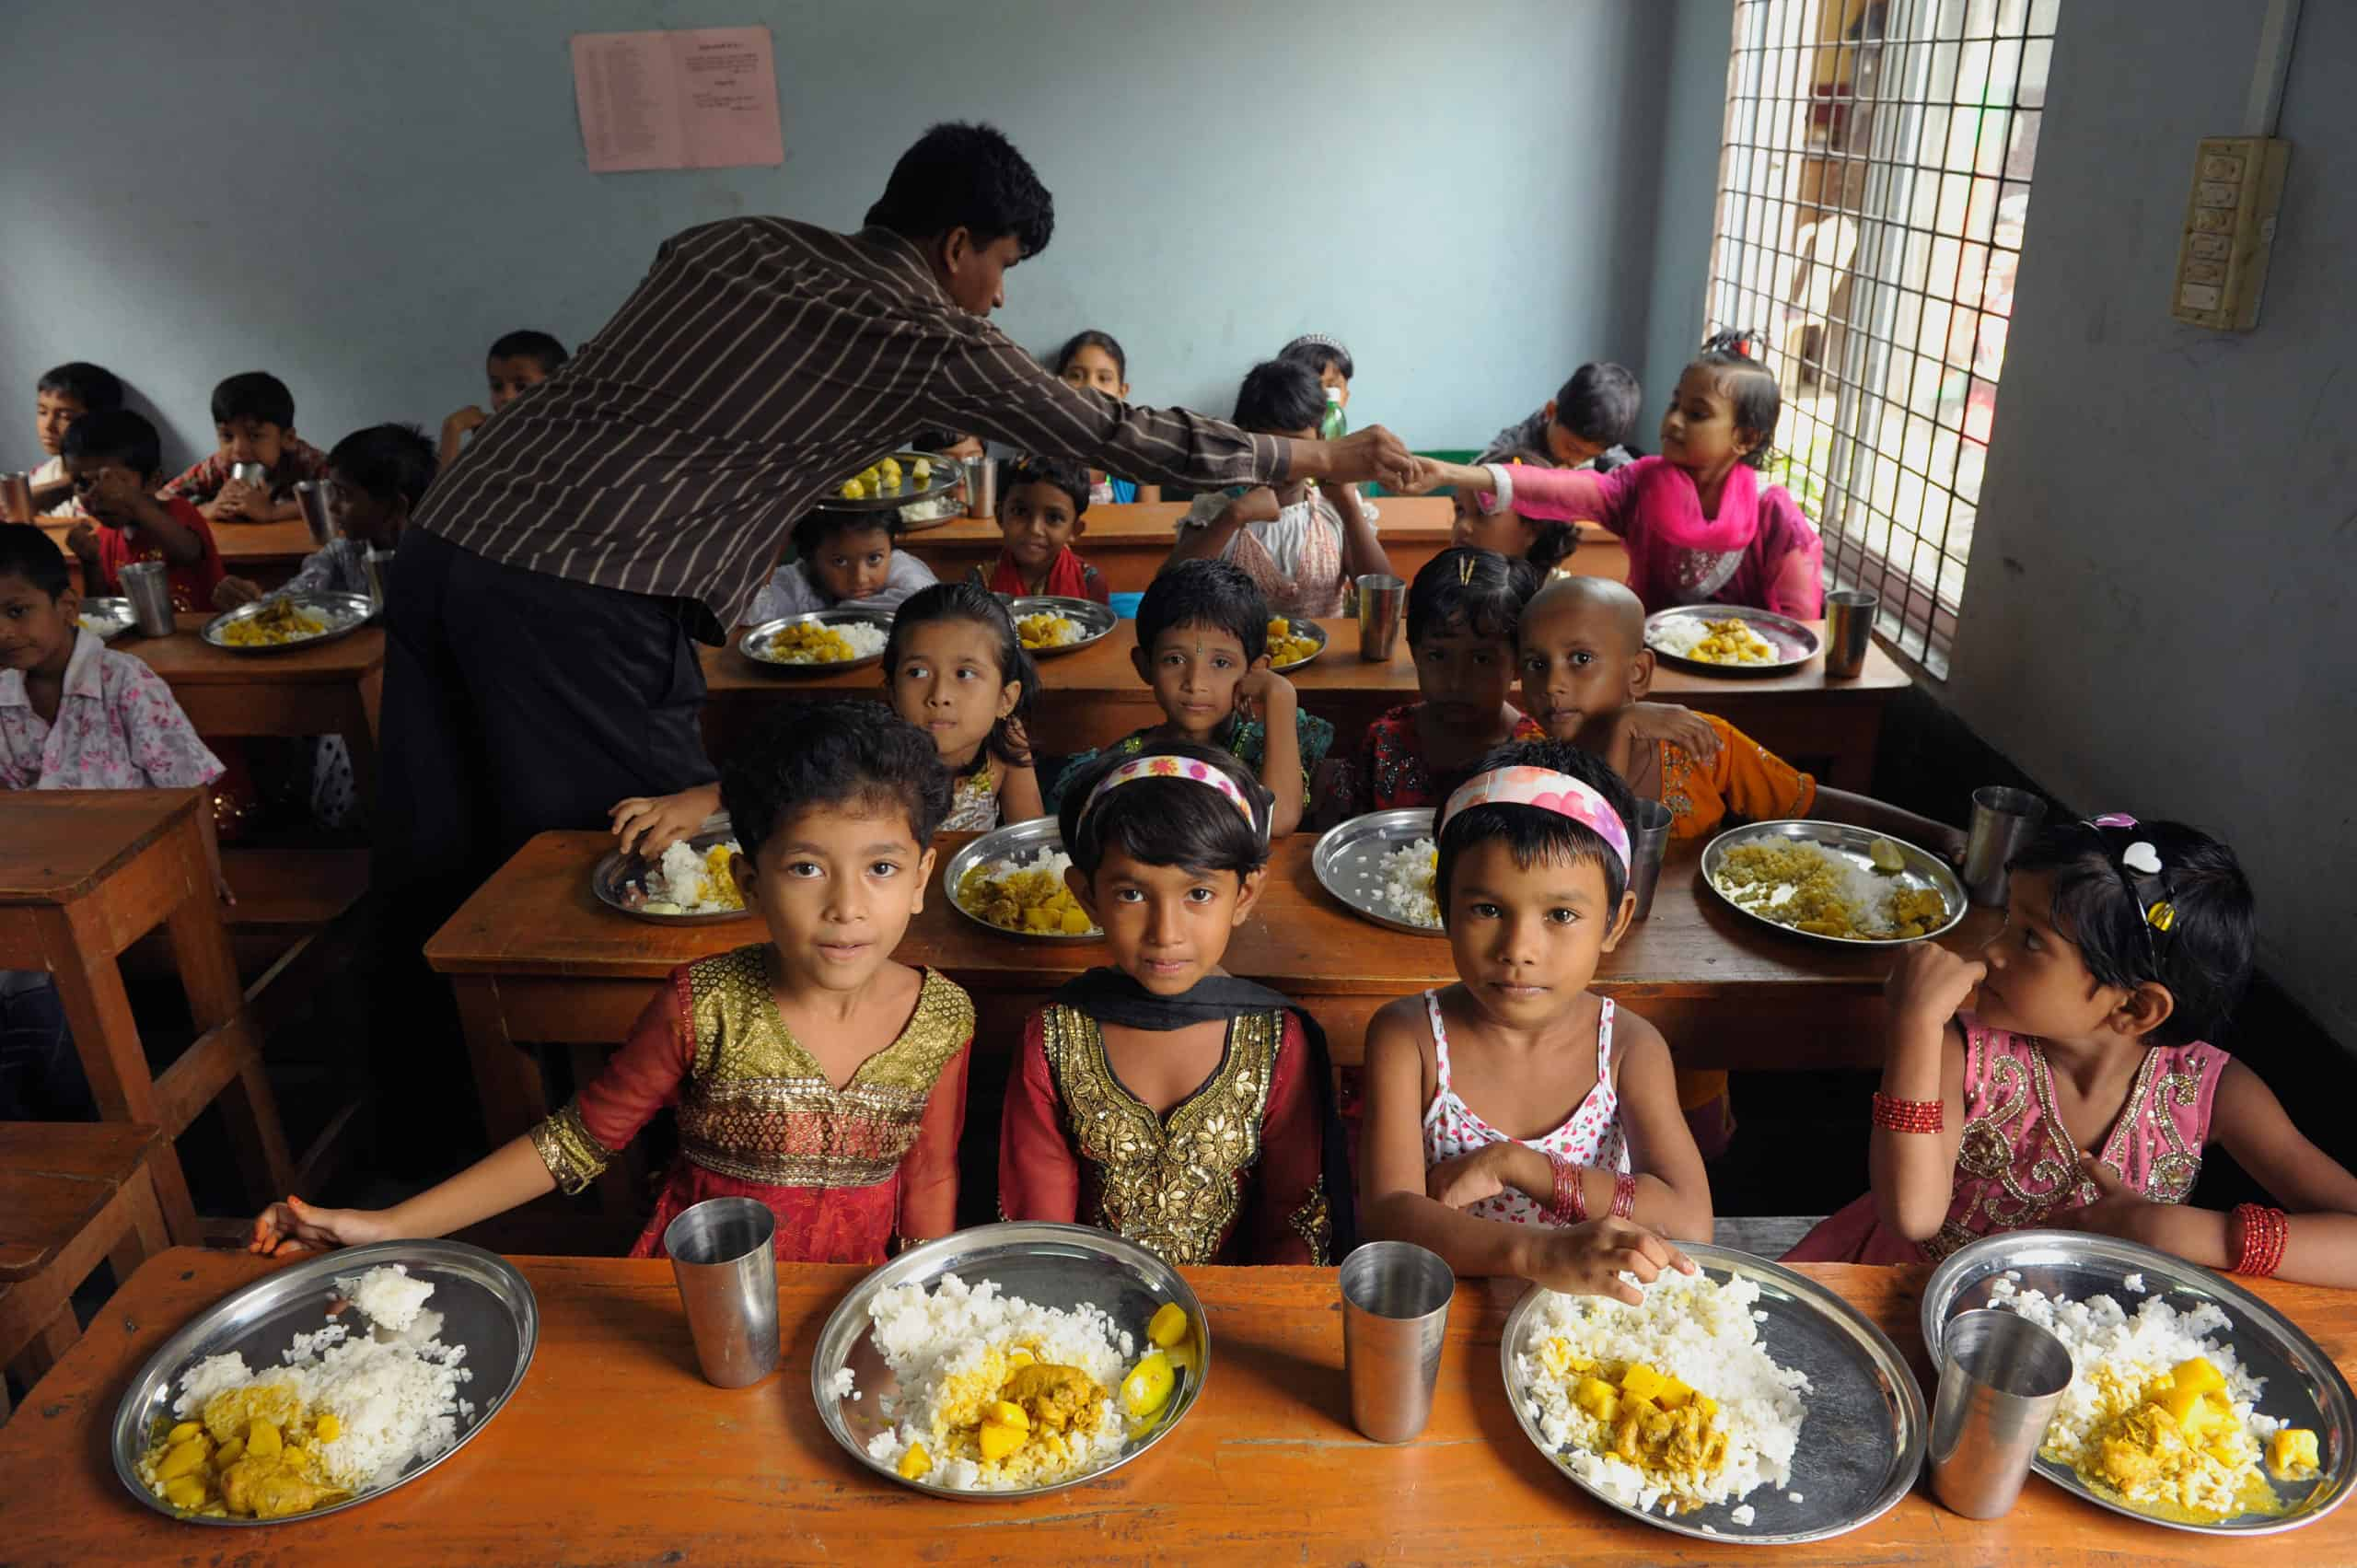 These kids are enjoying a meal at their Compassion center.